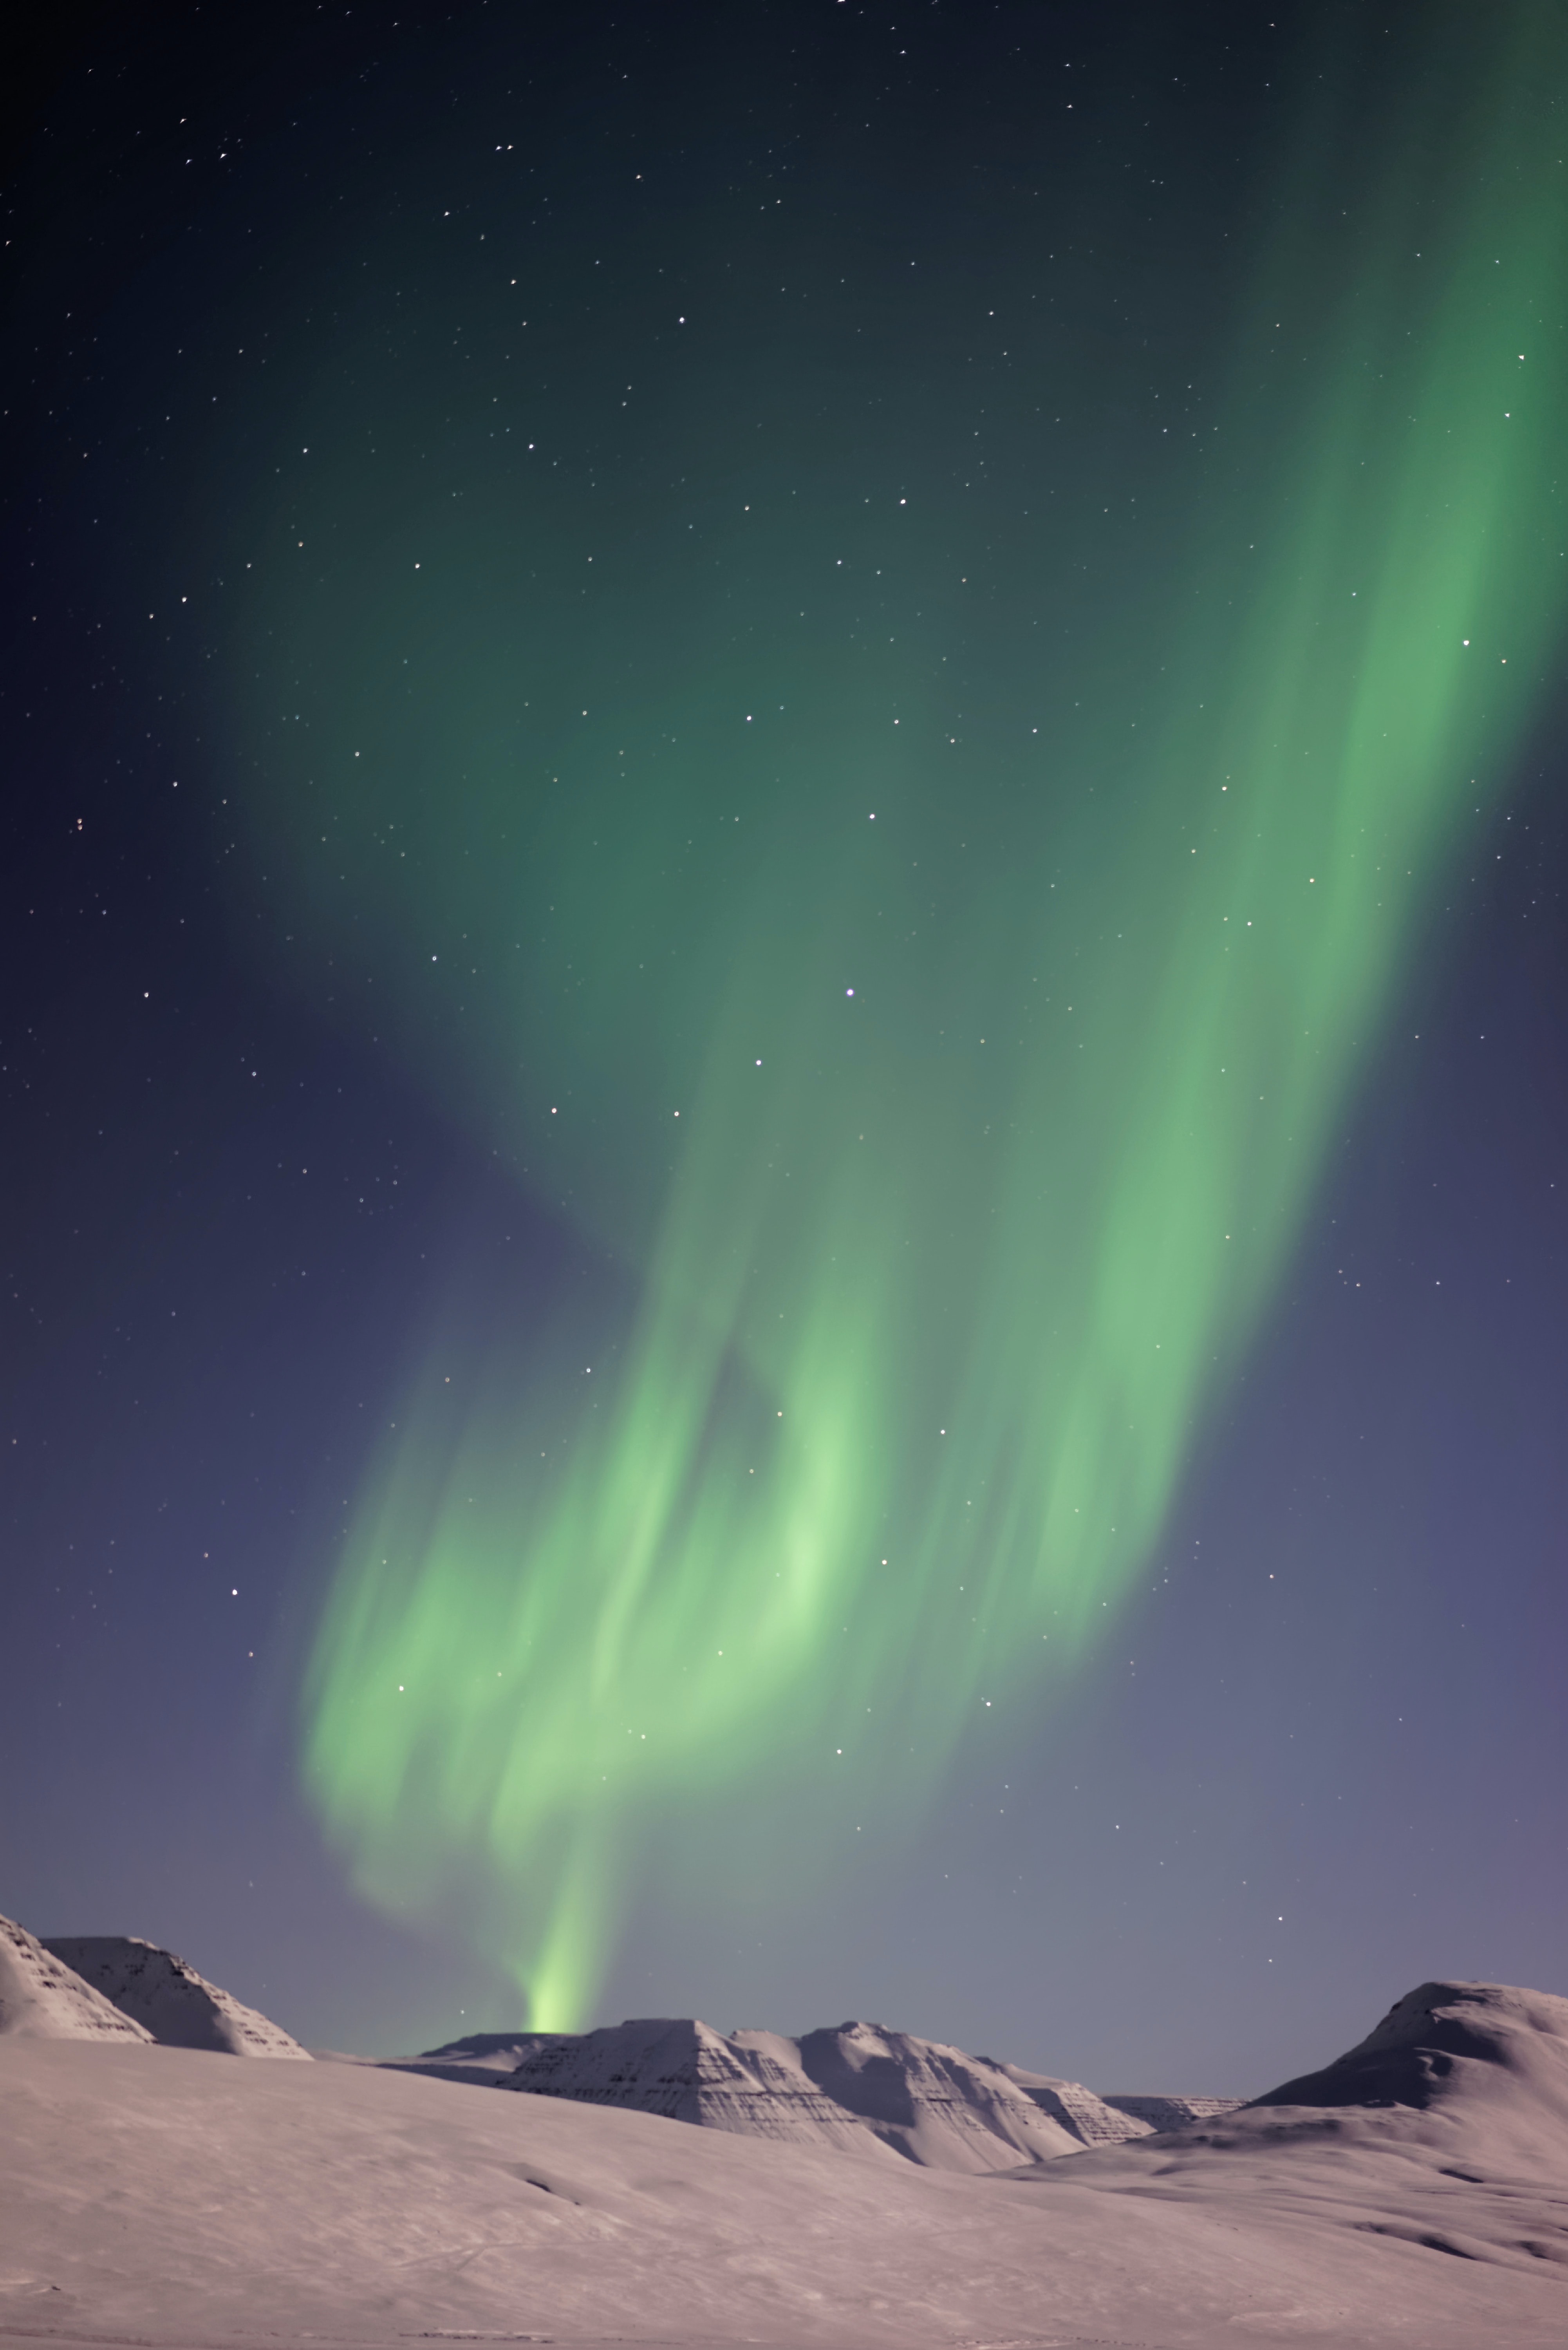 Green Northern Lights above the hills in Sauðárkrókur